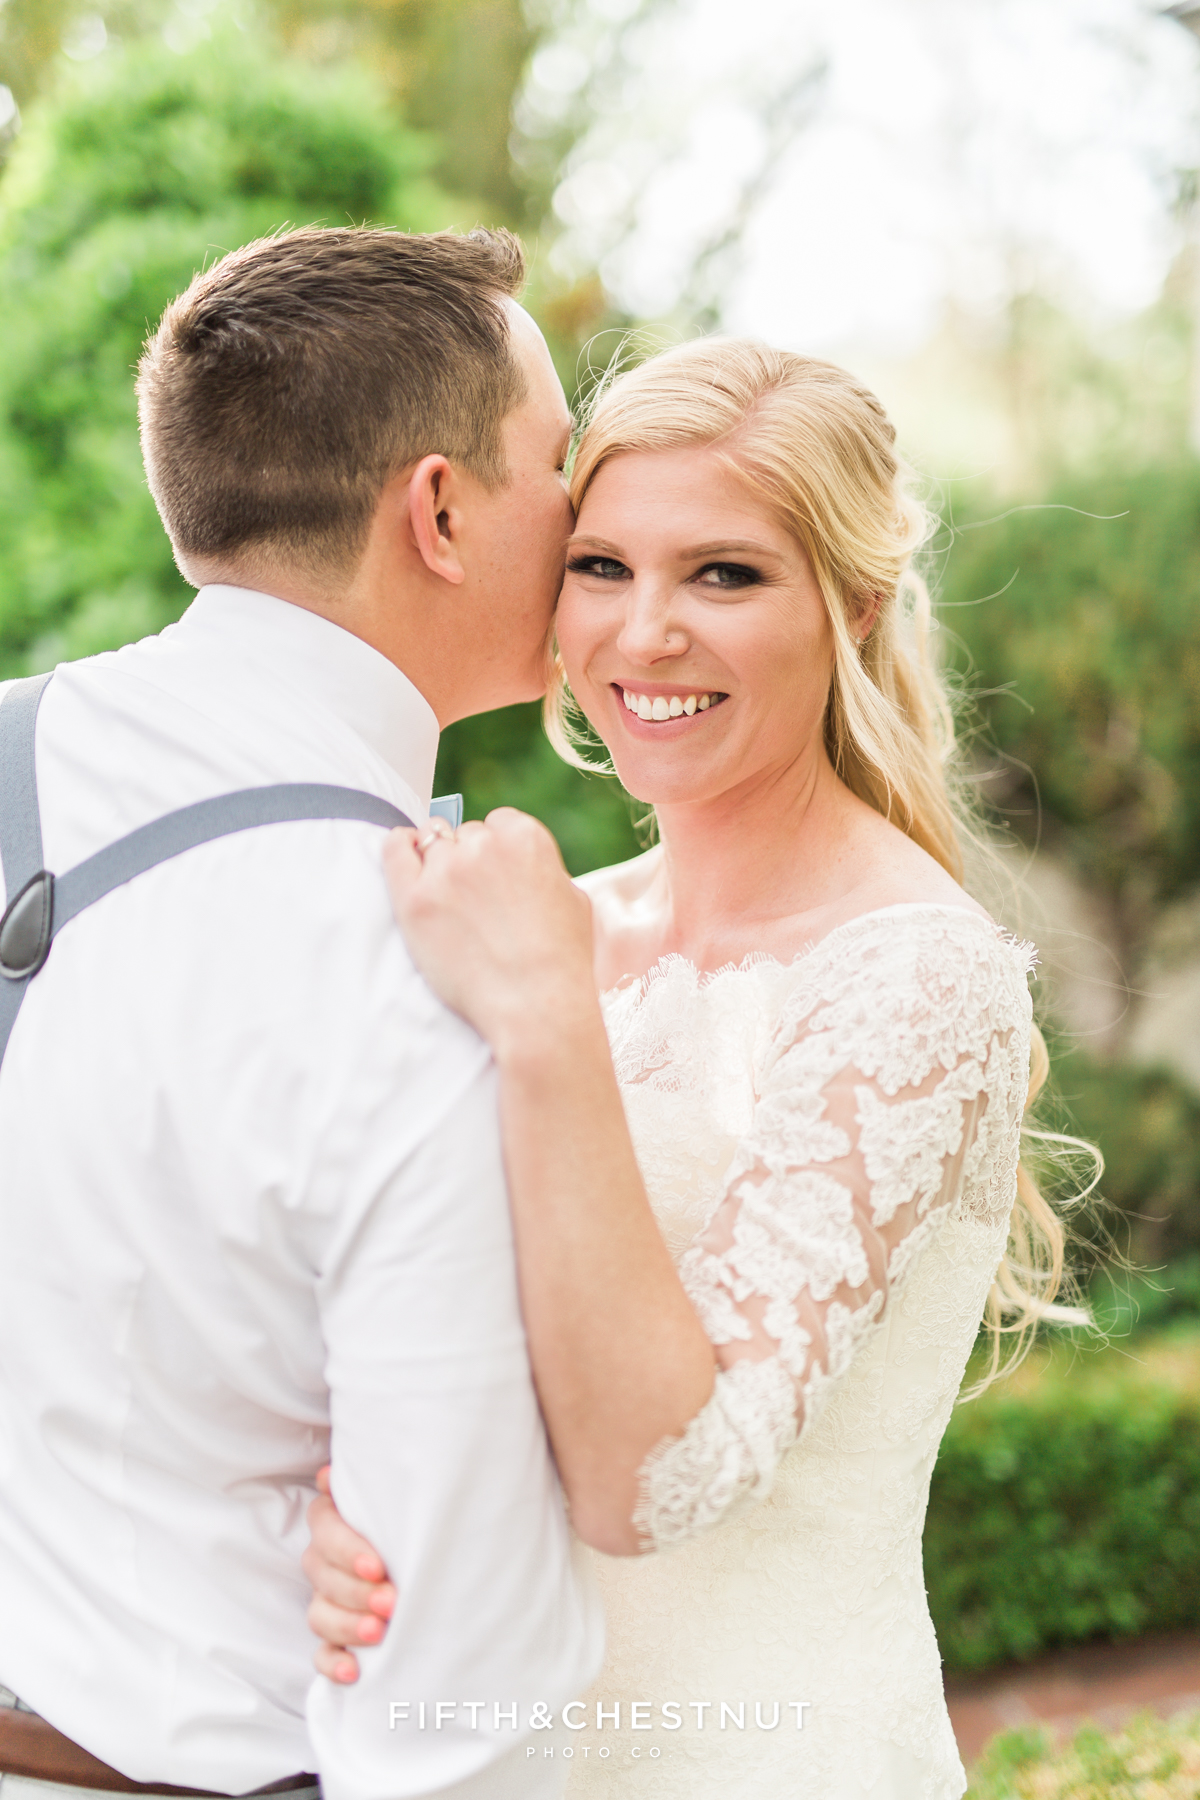 Groom whispering sweet nothings into his brides ear as she smiles and laughs